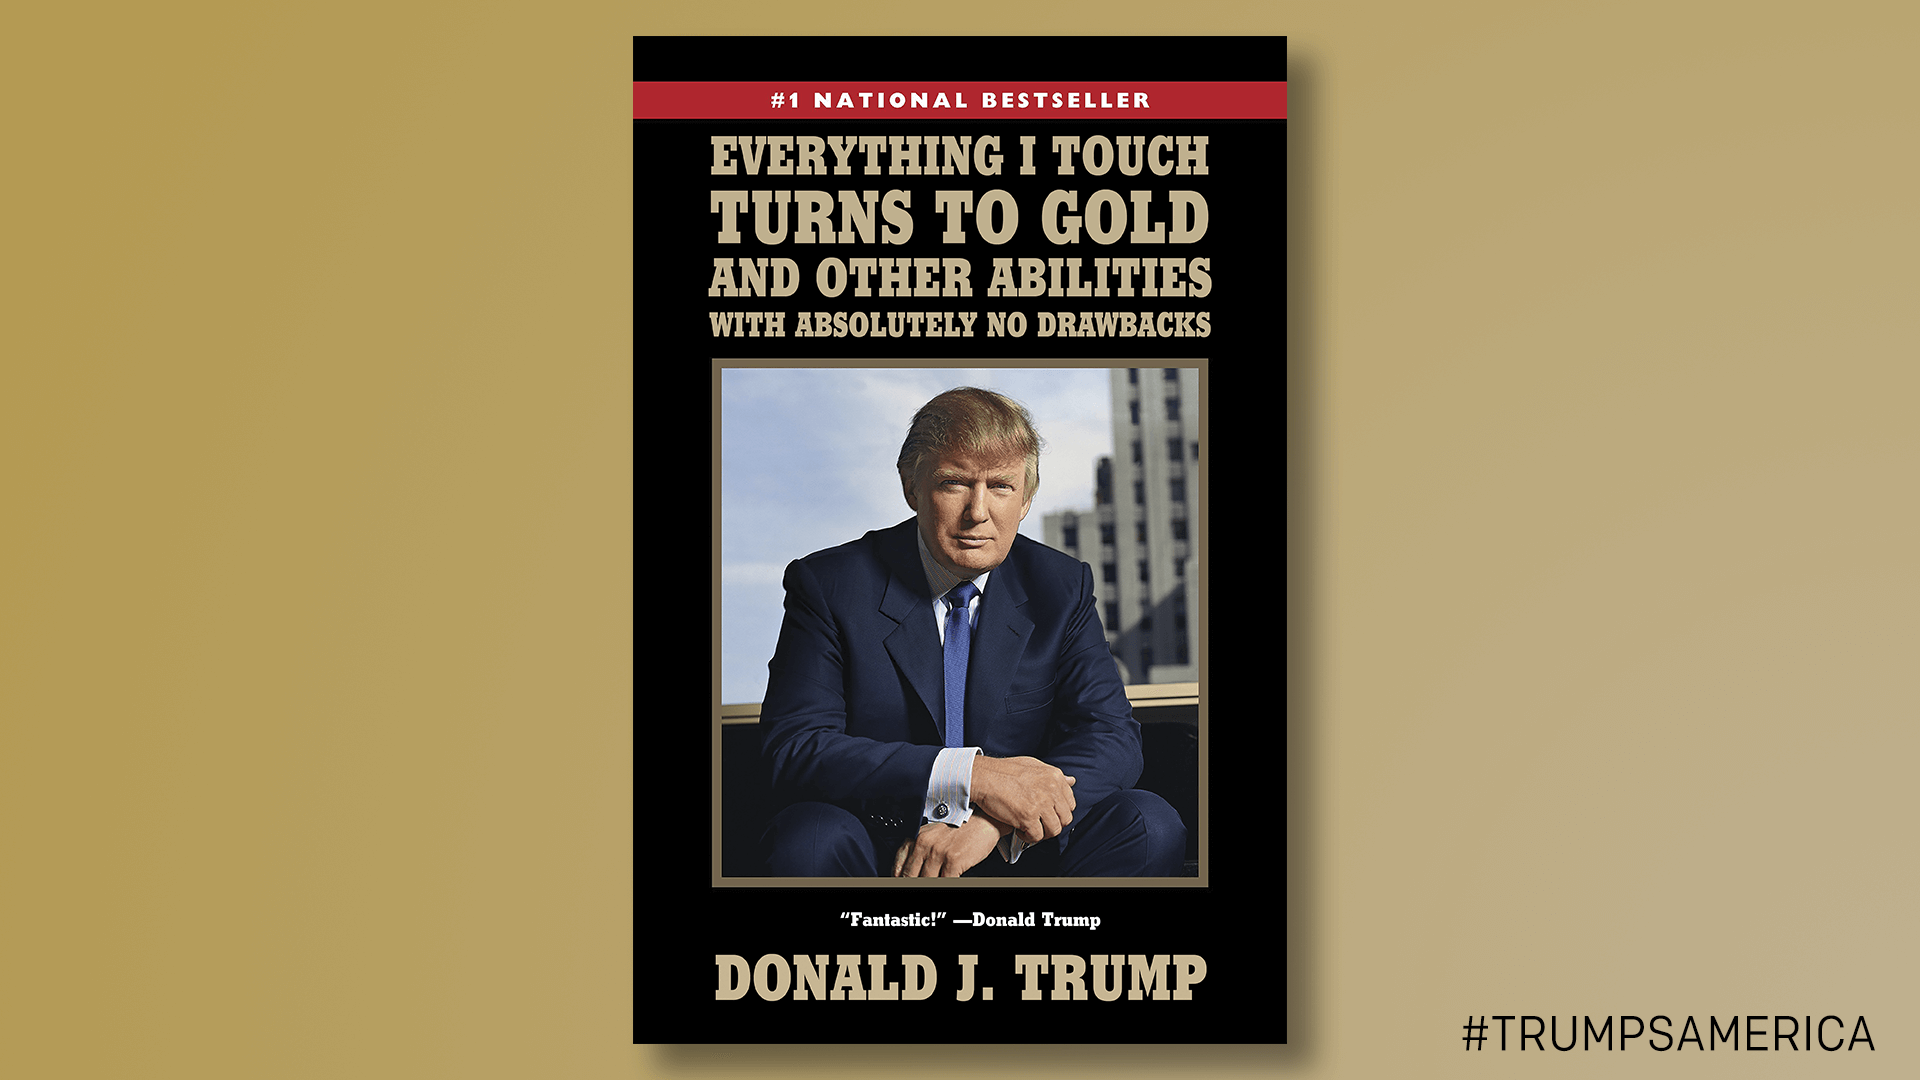 The Complete Works of Donald J. Trump: Books That Aren't Boring